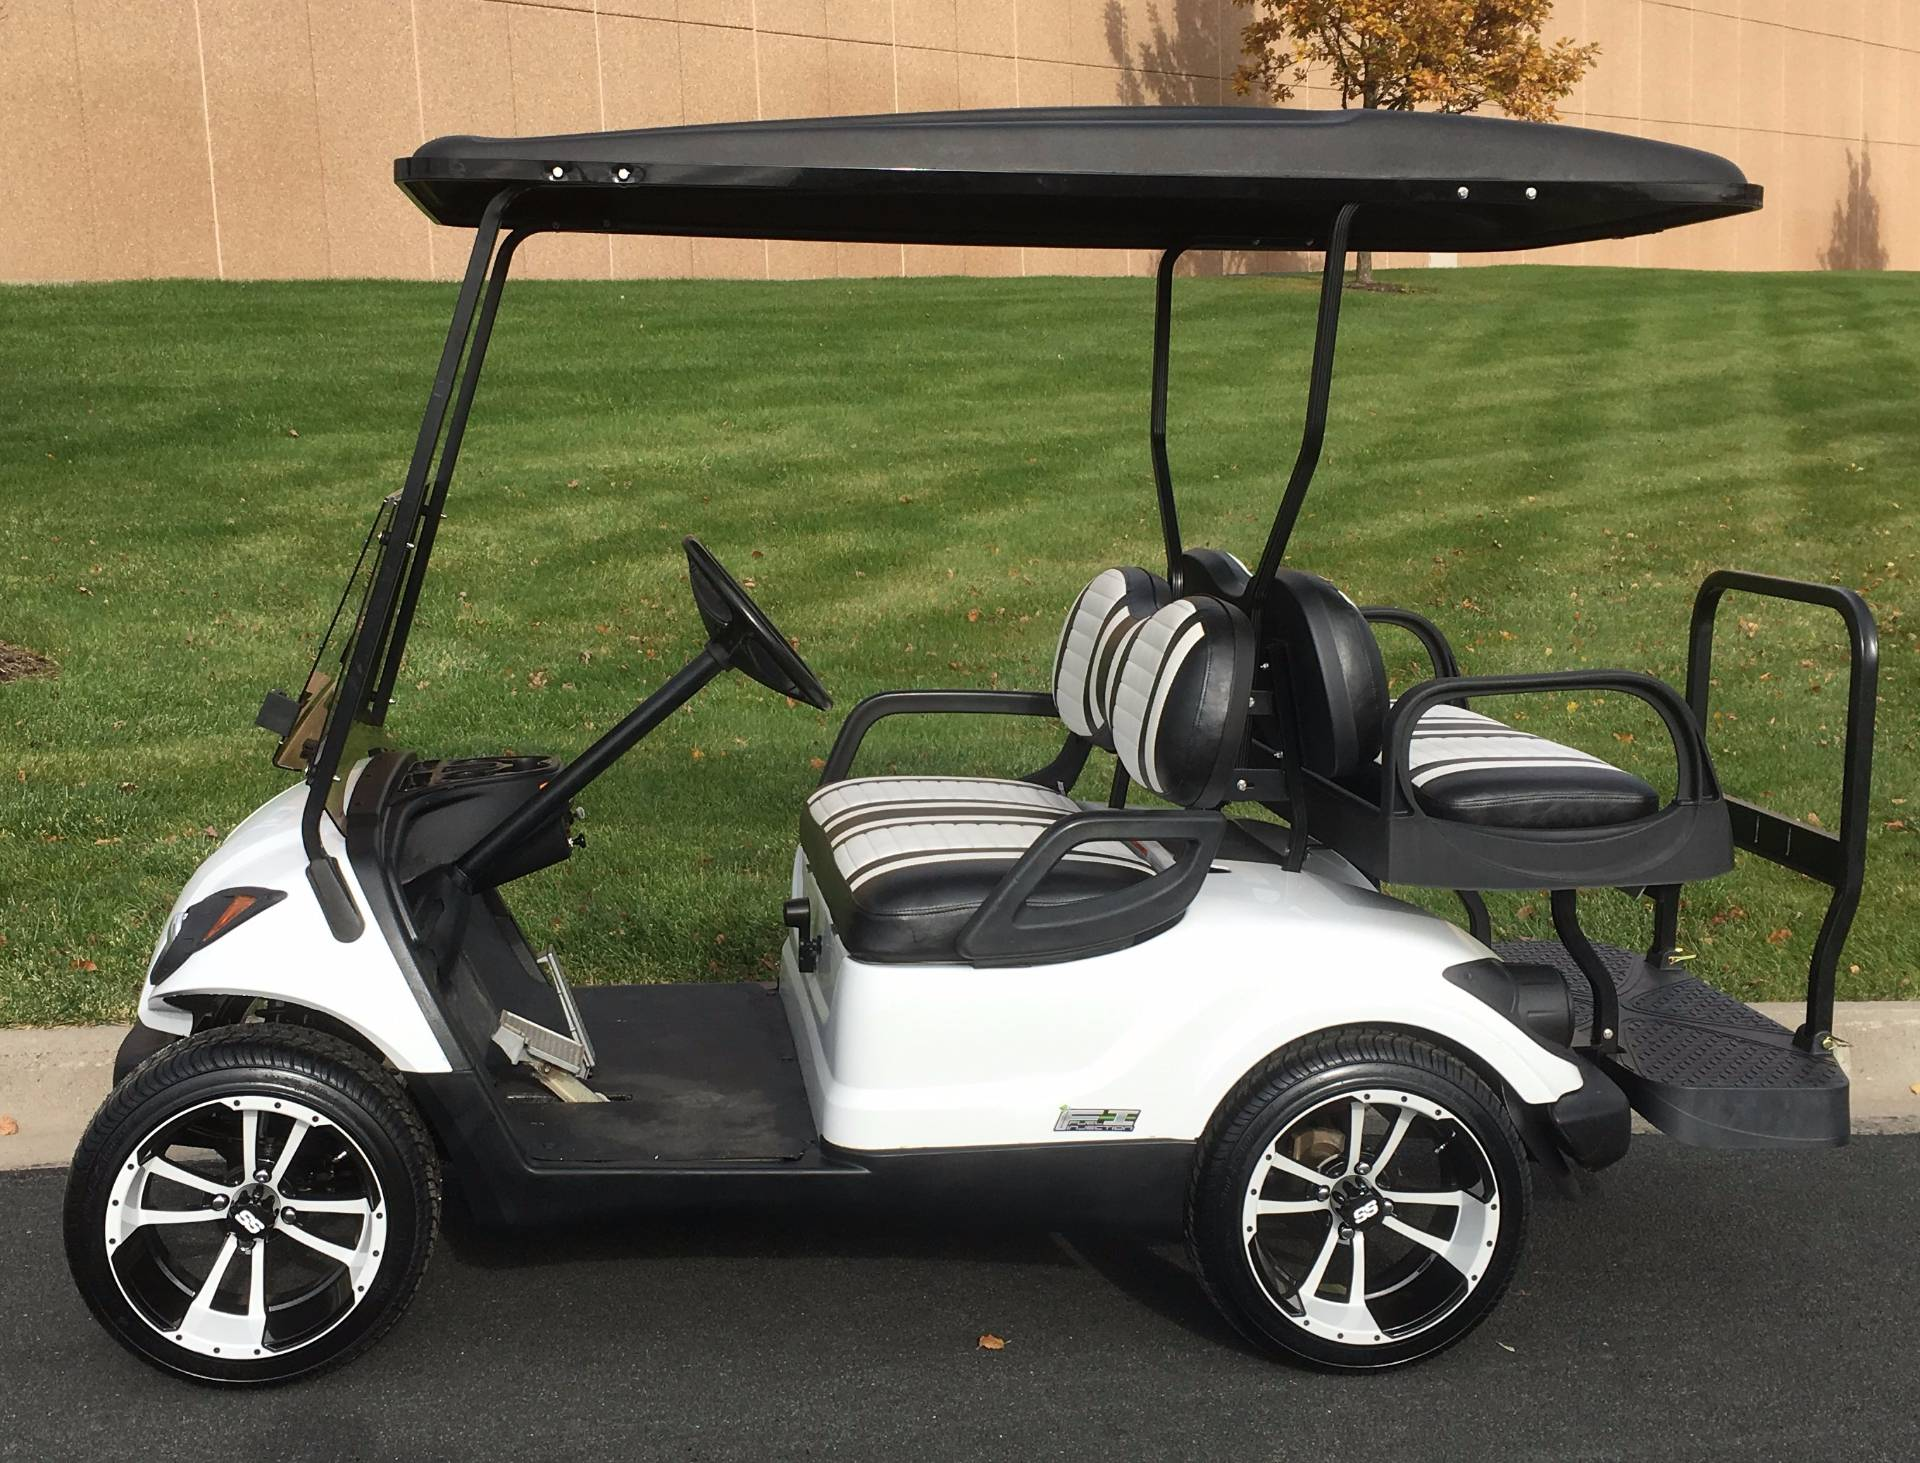 2012 Yamaha Golf Cart model Number Ydre Manual